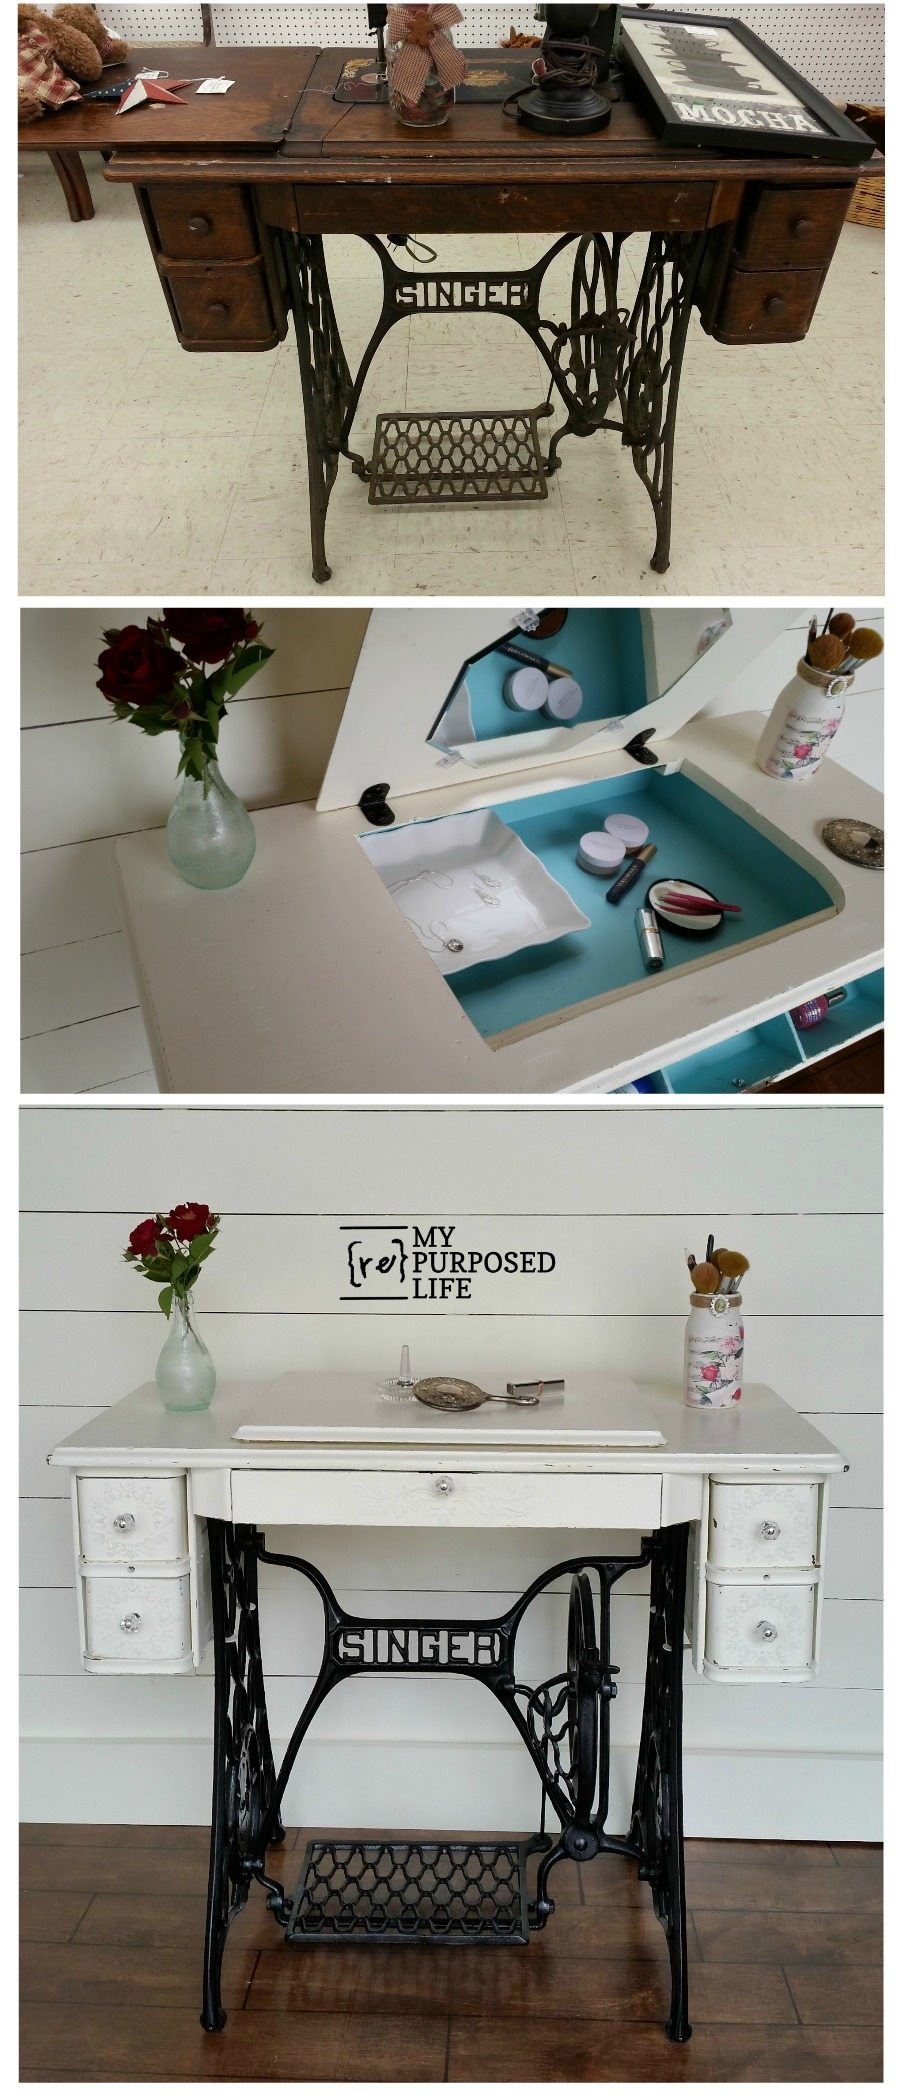 How to repurpose a singer sewing machine into a desk, table or makeup vanity. Lots of storage, very versatile piece of furniture for your home. #MyRepurposedLife #repurposed #furniture #singer #sewingmachine #makeover #upcycle via @repurposedlife